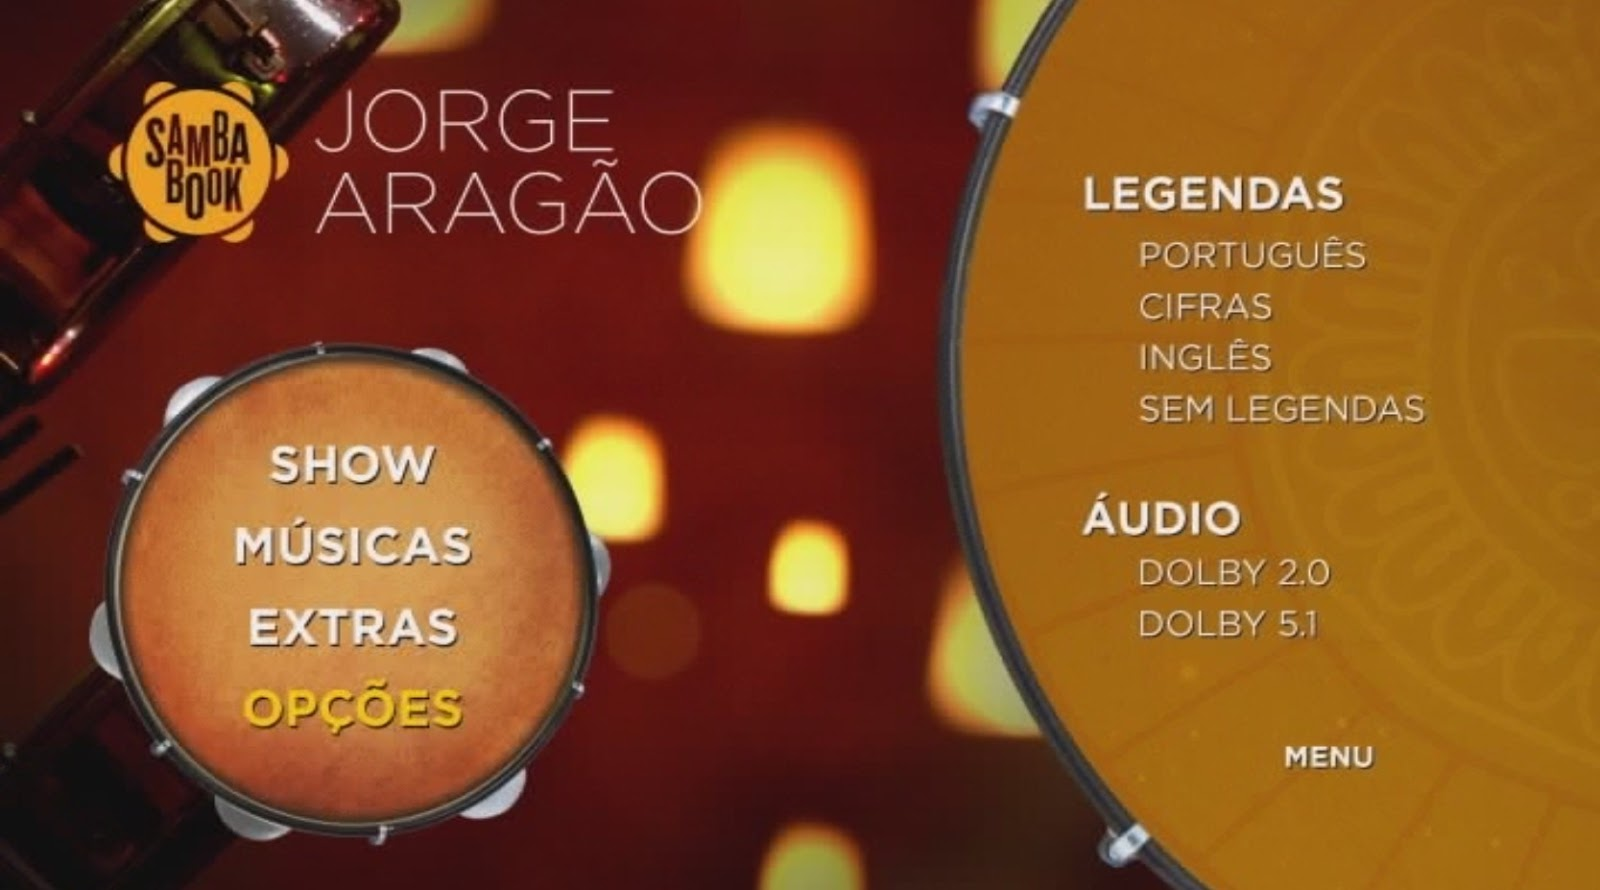 CLICK AQUI Download Jorge Aragão Sambabook DVD-R Download Jorge Aragão Sambabook DVD-R 3